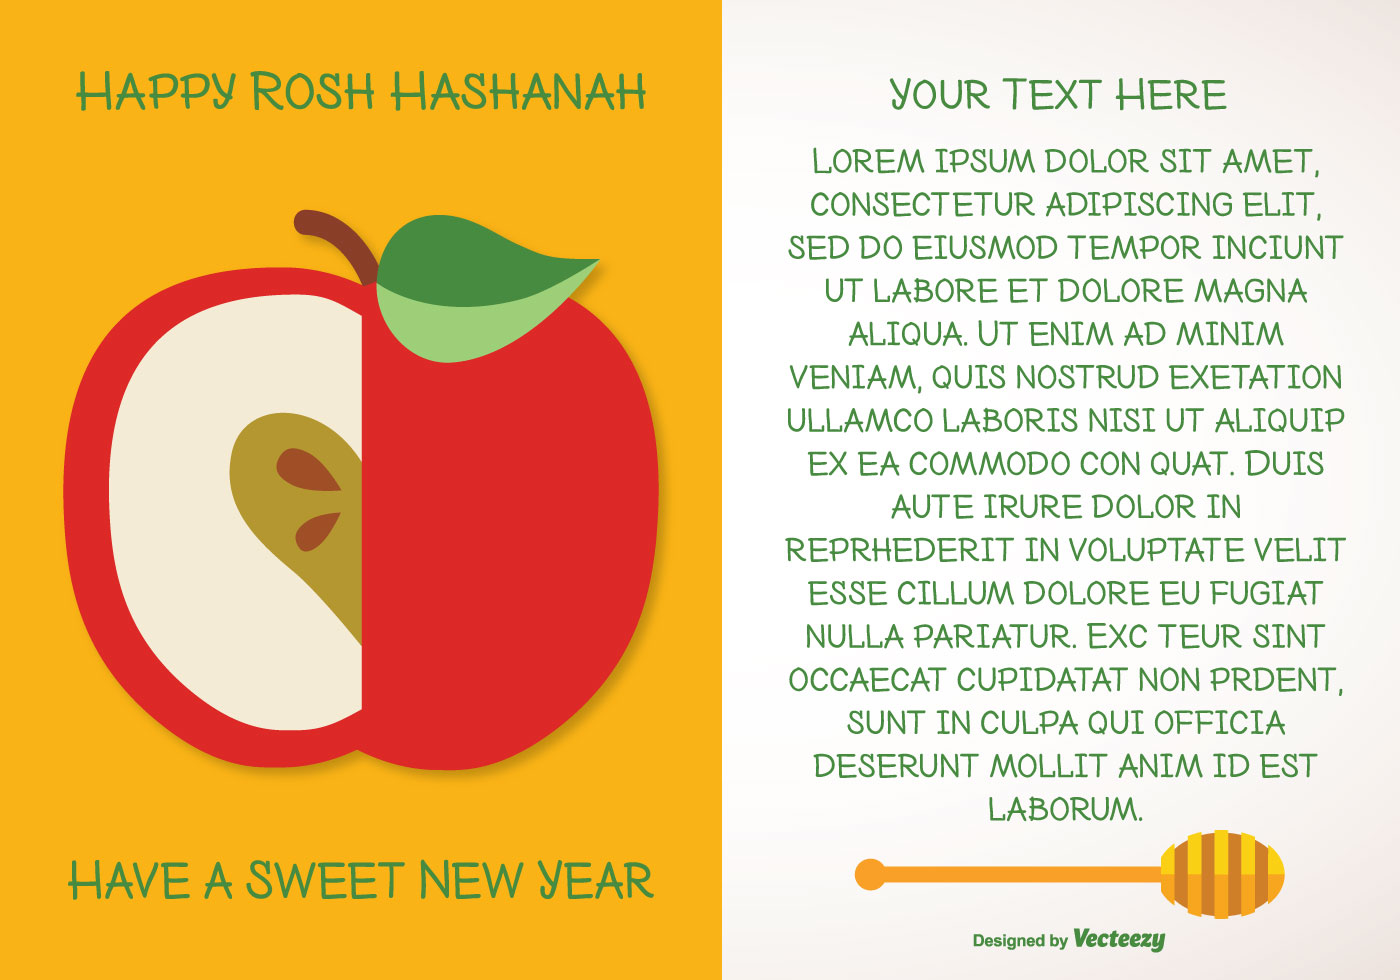 Rosh Hashanah Greeting Illustration Download Free Vector Art